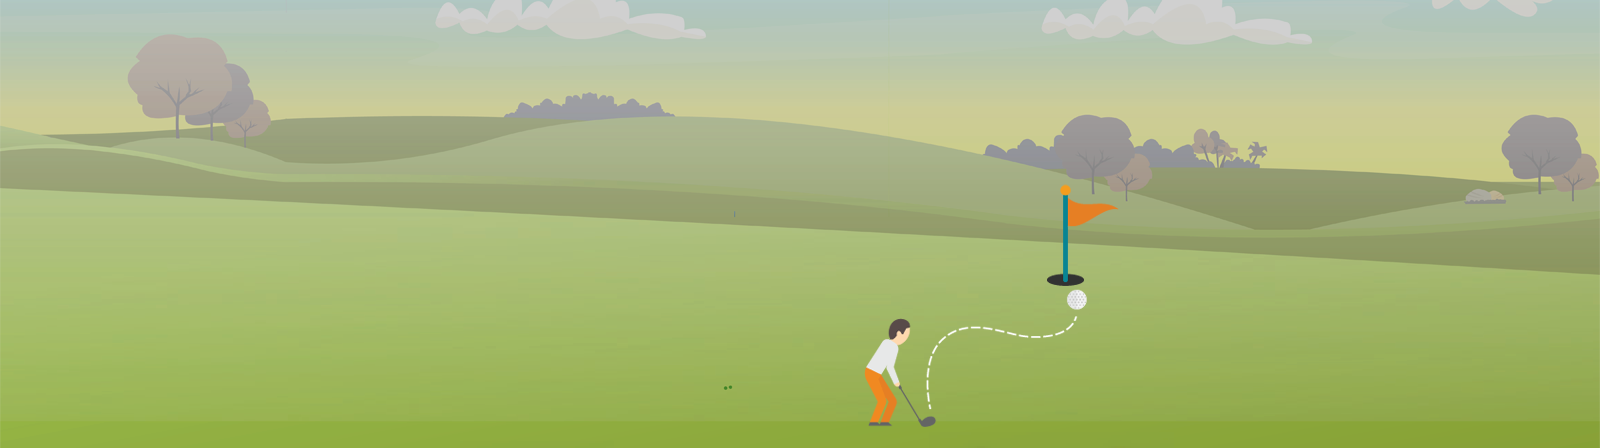 golfbannerwithgolfer1